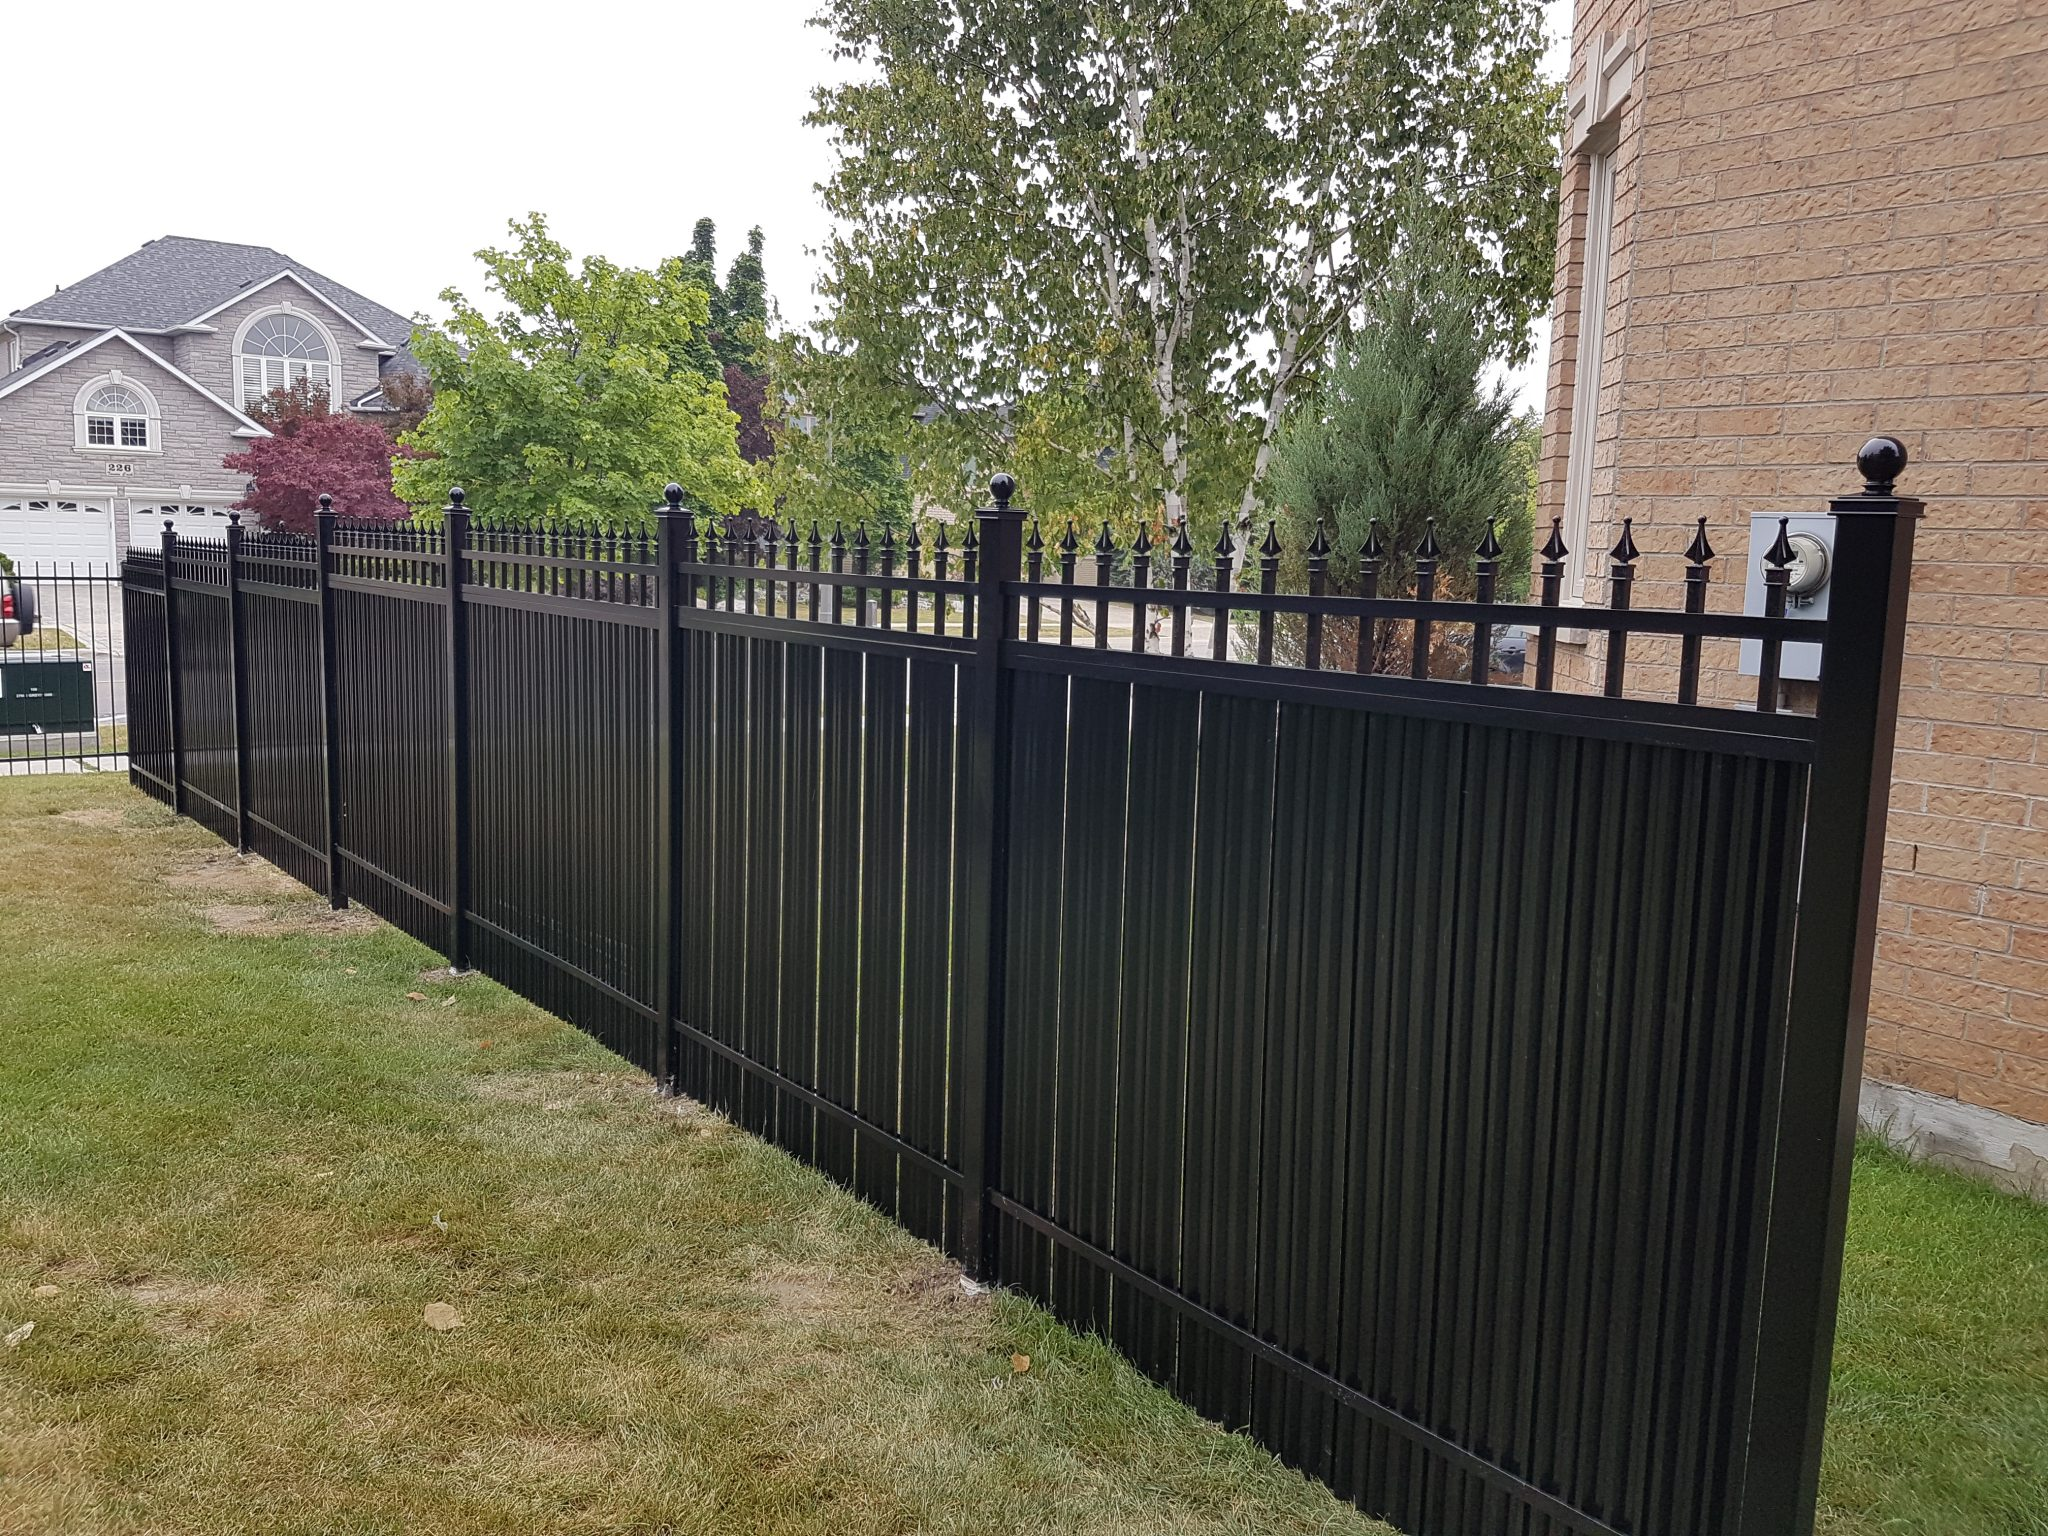 Subdivisions need privacy fences